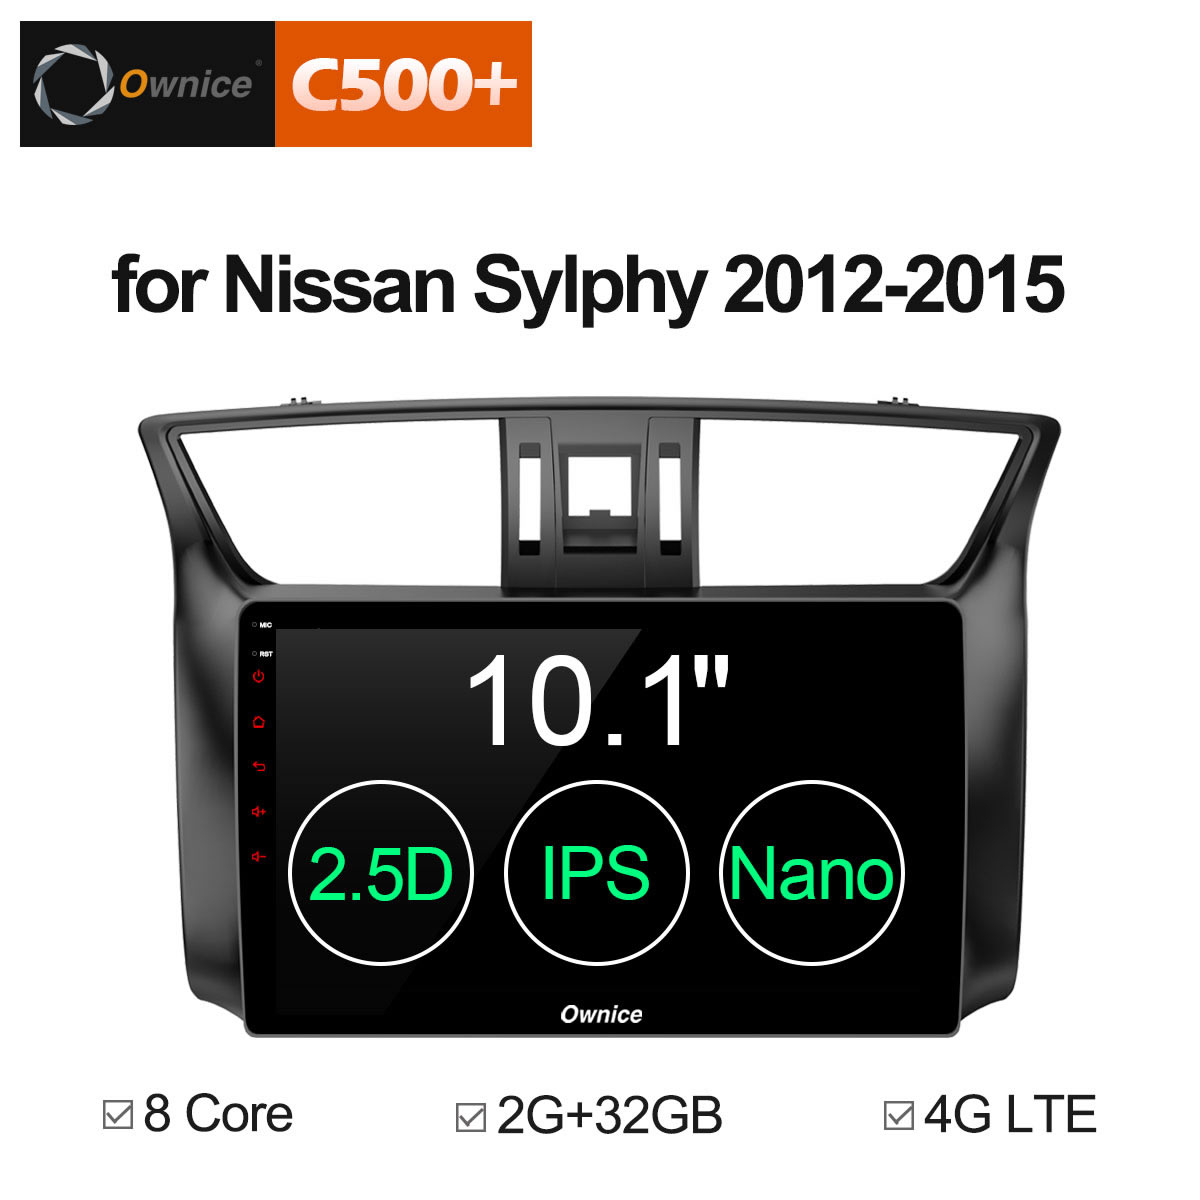 Ownice C500+ G10 Android 8.1 Octa Core Car DVD GPS Navigation Player Car Stereo for Nissan Sylphy 2012 - 2015 2G/32G 4G LTE ownice c500 octa core 10 1 android gps car radio multimedia player 2g 32g for skoda octavia 2014 2015 2016 2017 dvd 4g lte pc